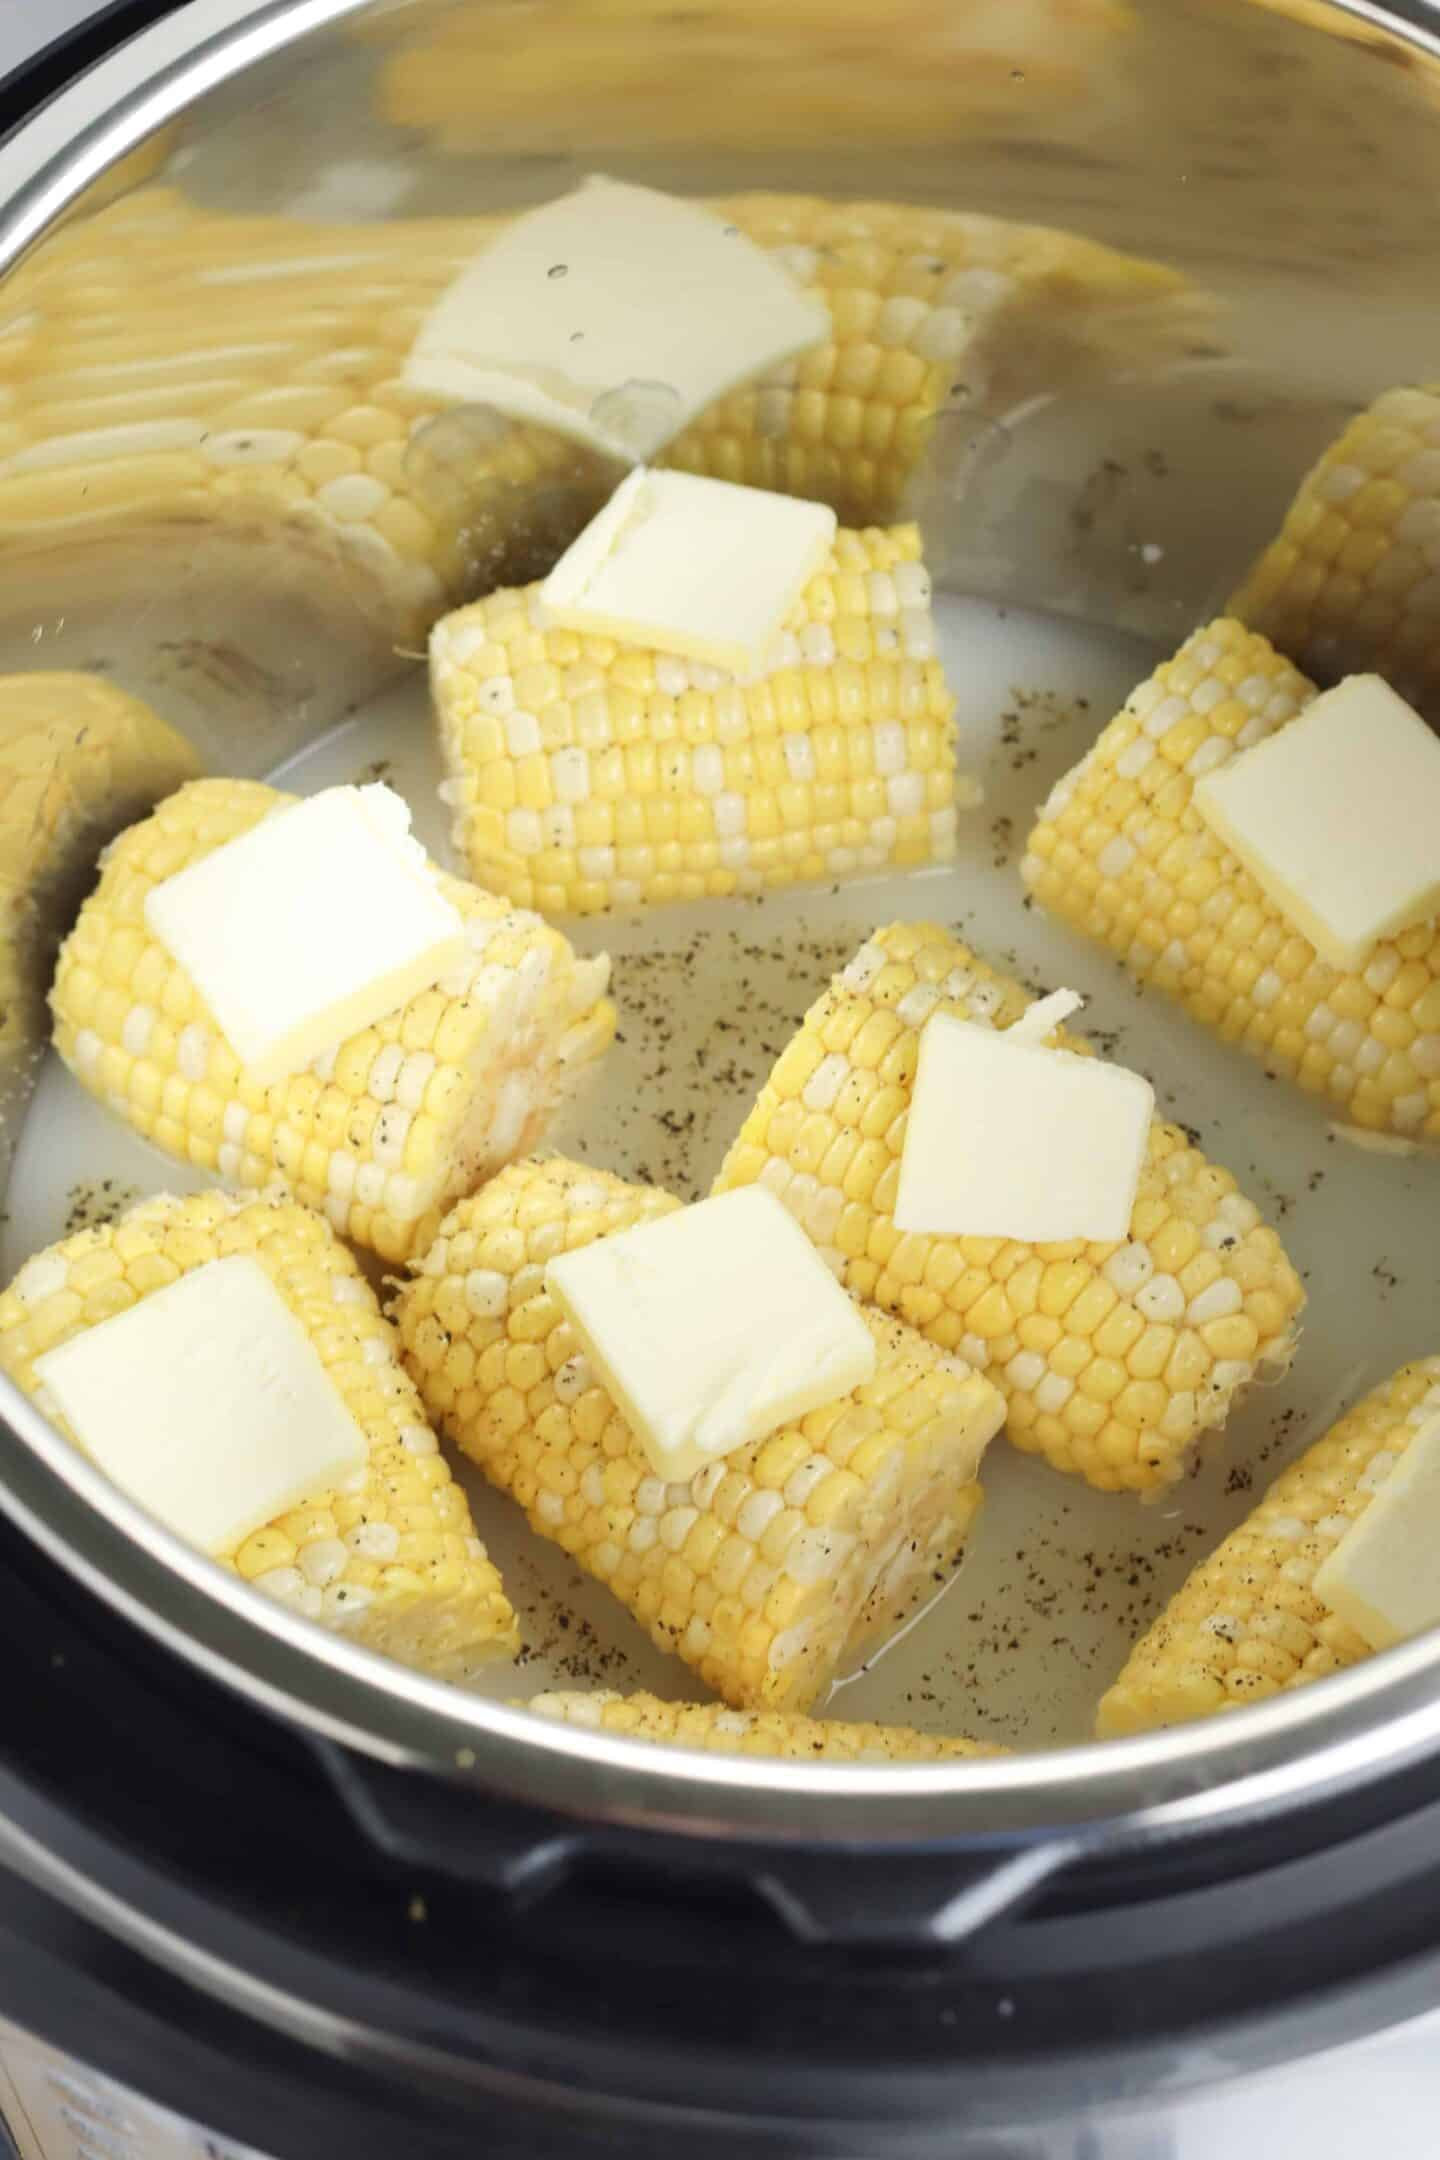 corn on the cob cooked int he pressure cooker